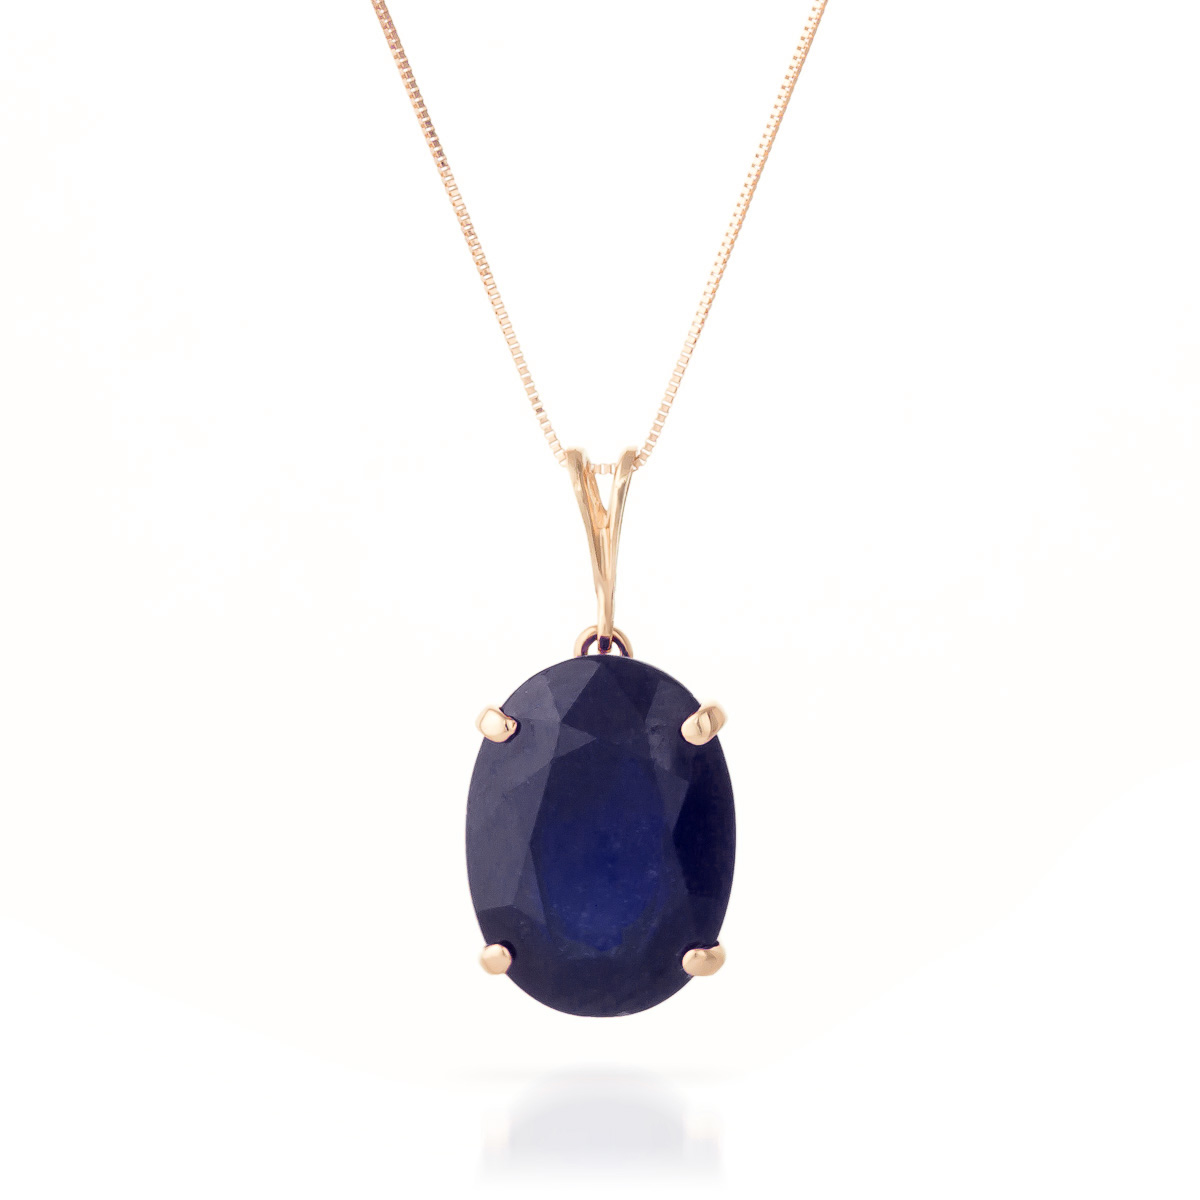 Bargain Oval Cut Sapphire Pendant Necklace 8.5ct in 9ct Rose Gold Stockists